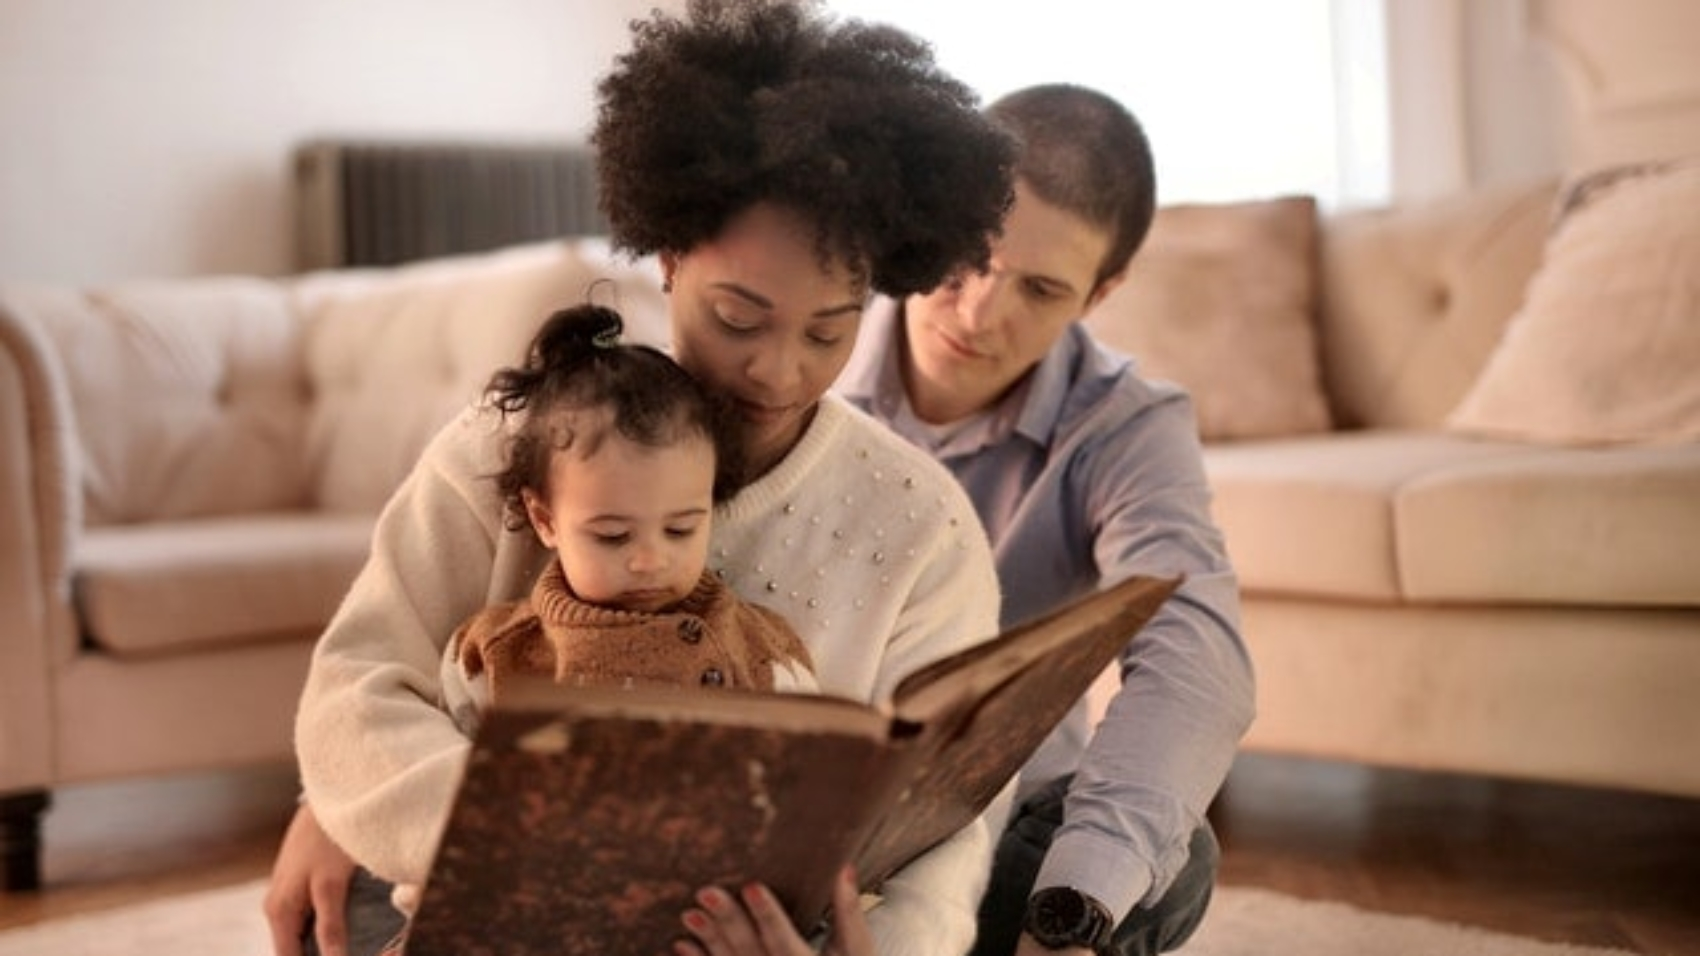 photo-of-woman-holding-brown-book-with-her-child-3818561